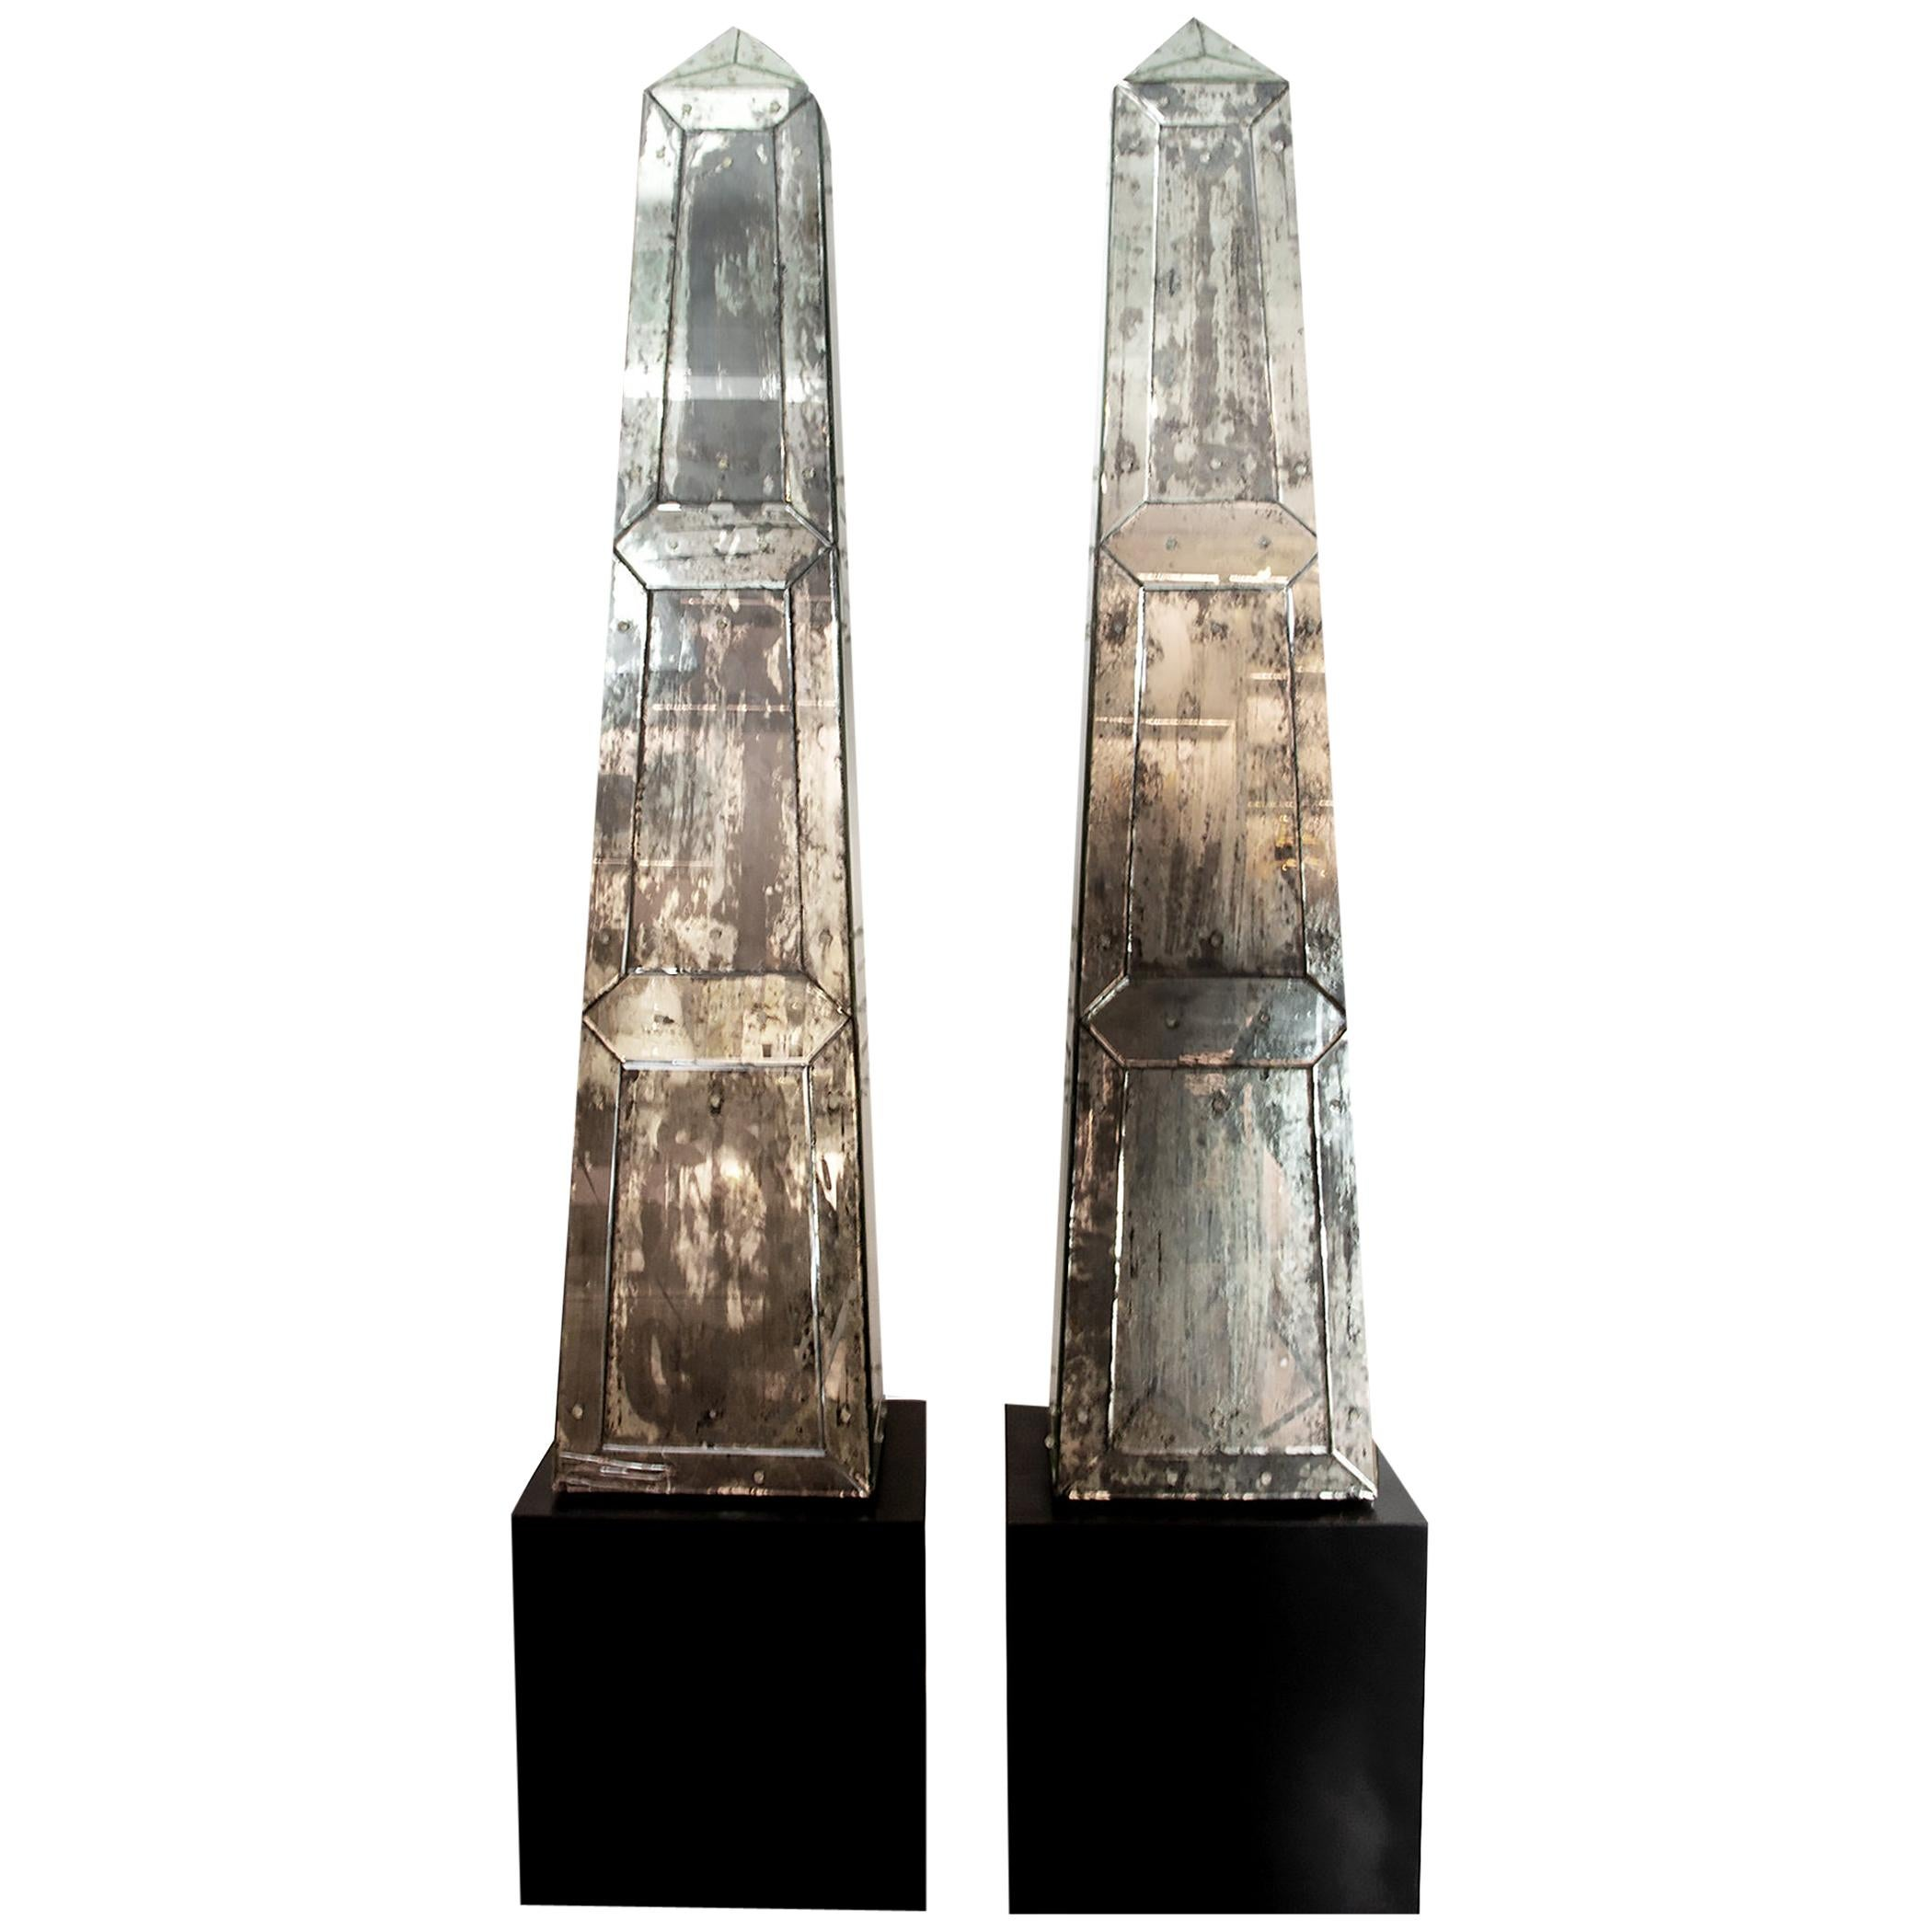 Mid-20th Century Pair of Monumental Continental Neoclassical Mirrored Obelisks